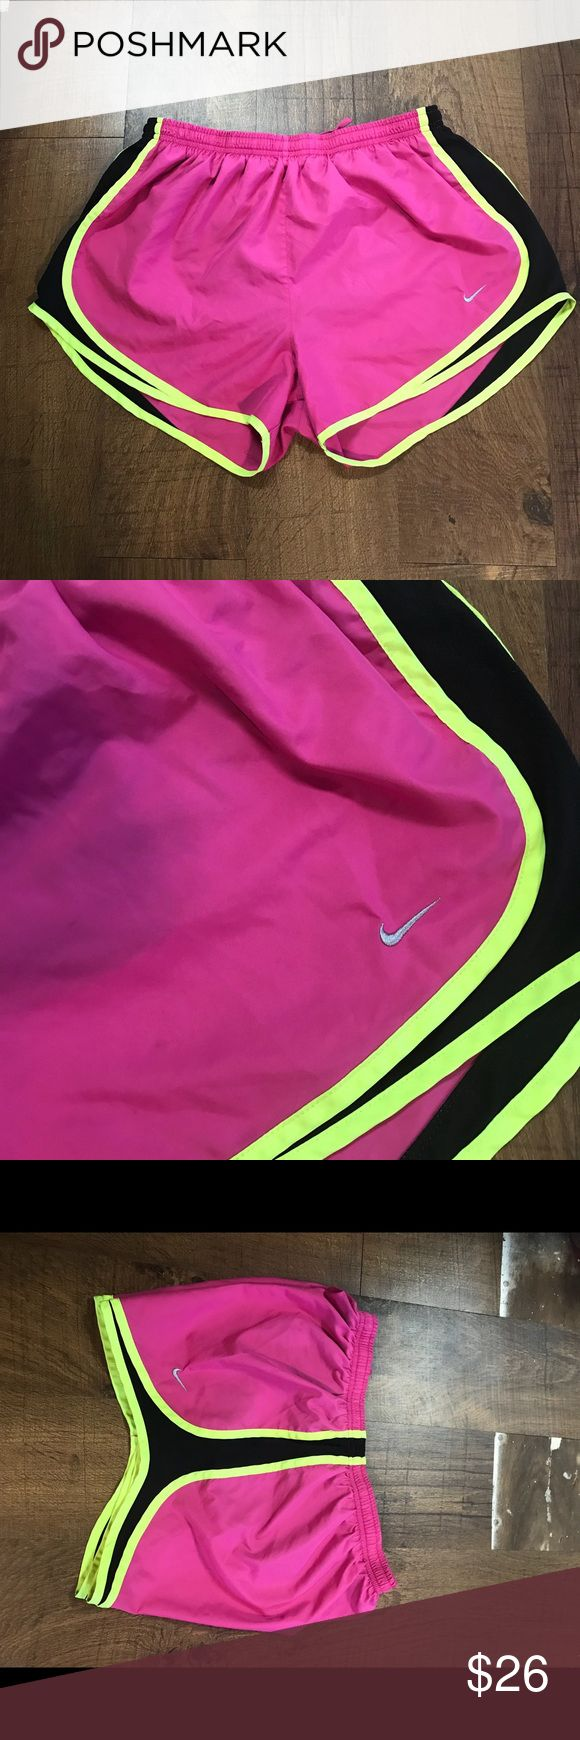 Nike neon running shorts Size large  No rips or stains  Adjustable waist  Built in underwear  Material listed in photo  Laying flat  Waist 14in  Leg 11in  💕open to offers💕 IN# A-5 Nike Shorts